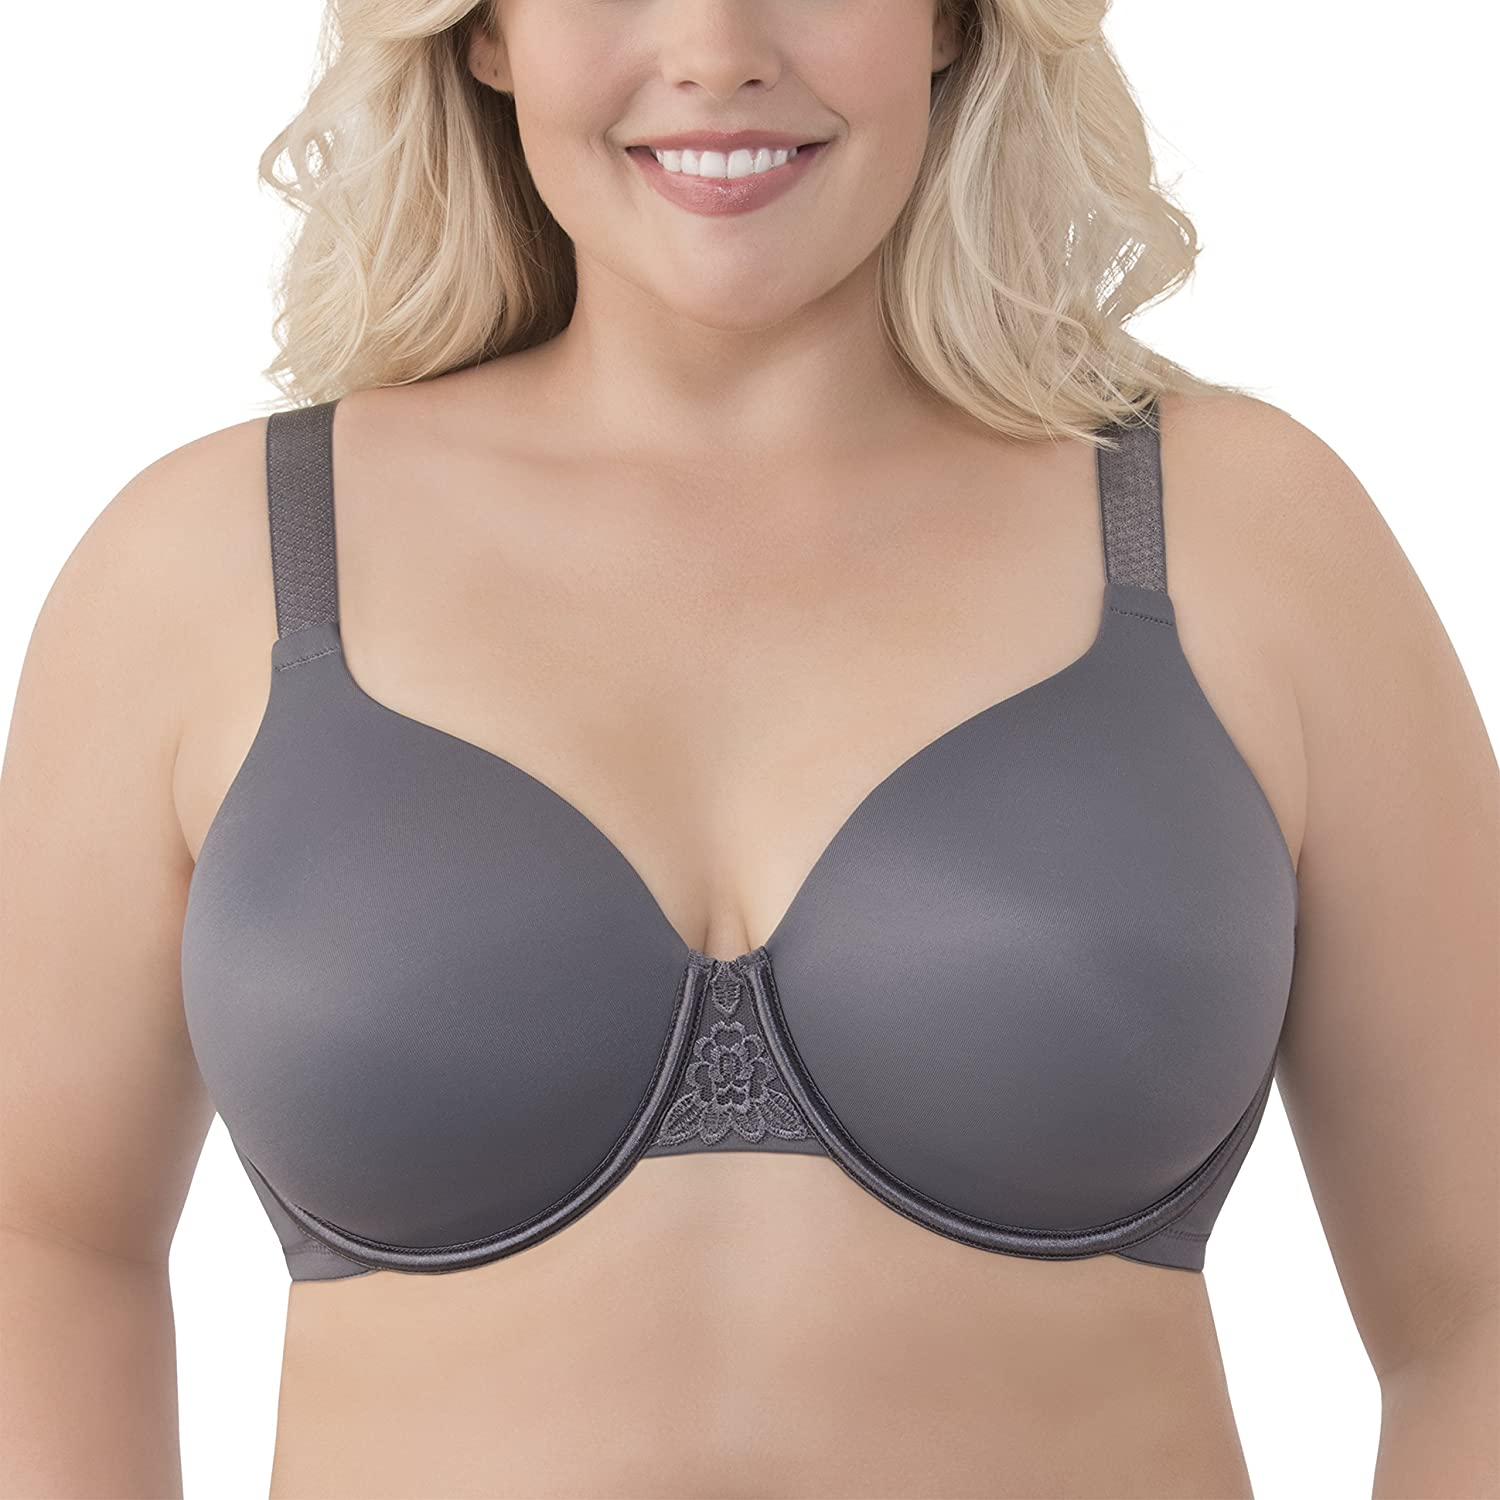 Vanity Fair Women's Beauty Back Full-Figure Underwire Bra 76380 Vanity Fair Women's Bras